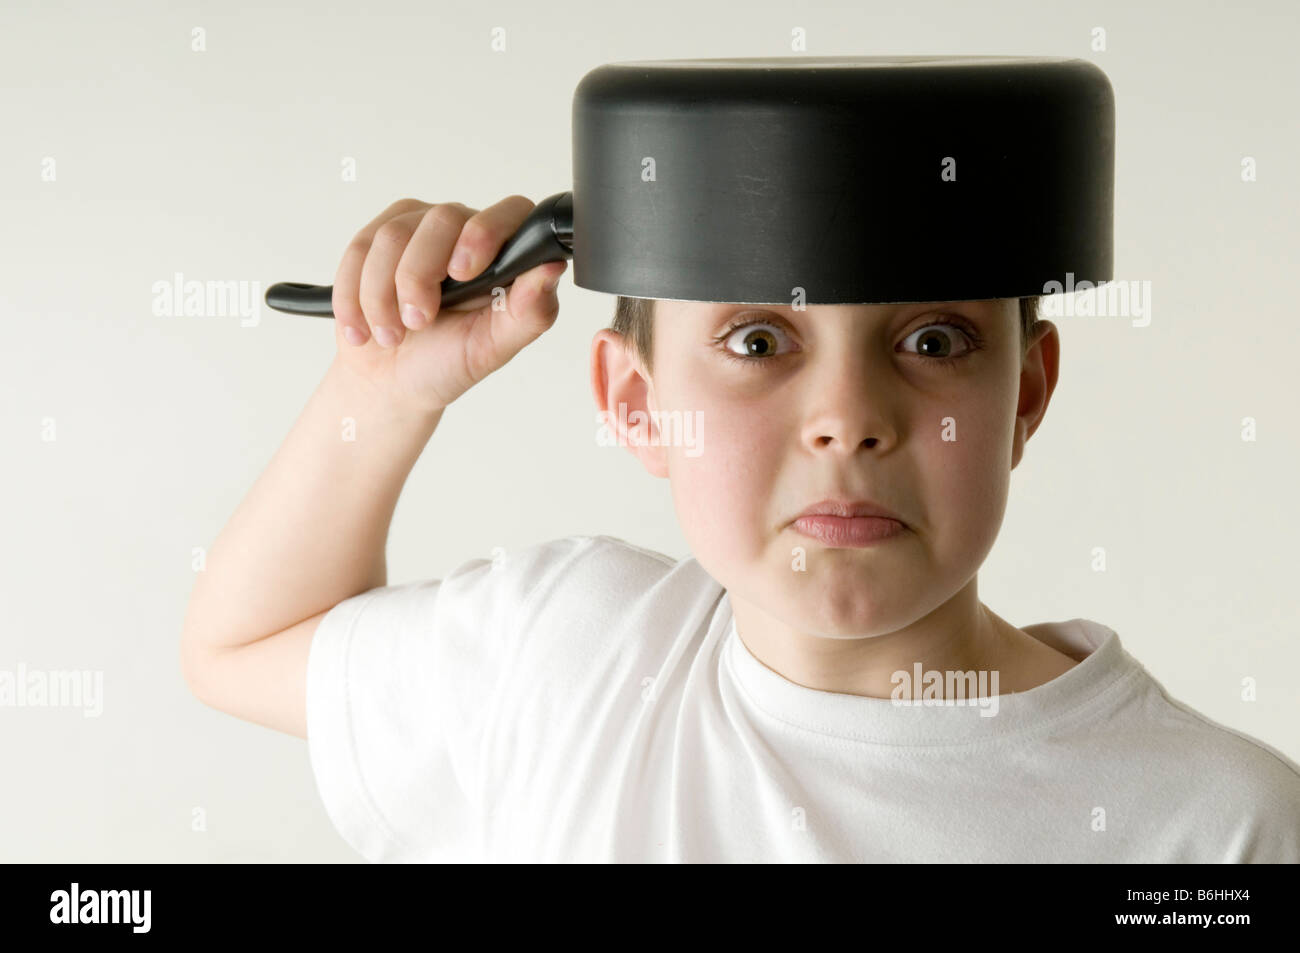 Silly Boy stock photo. Image of black, child, comedy